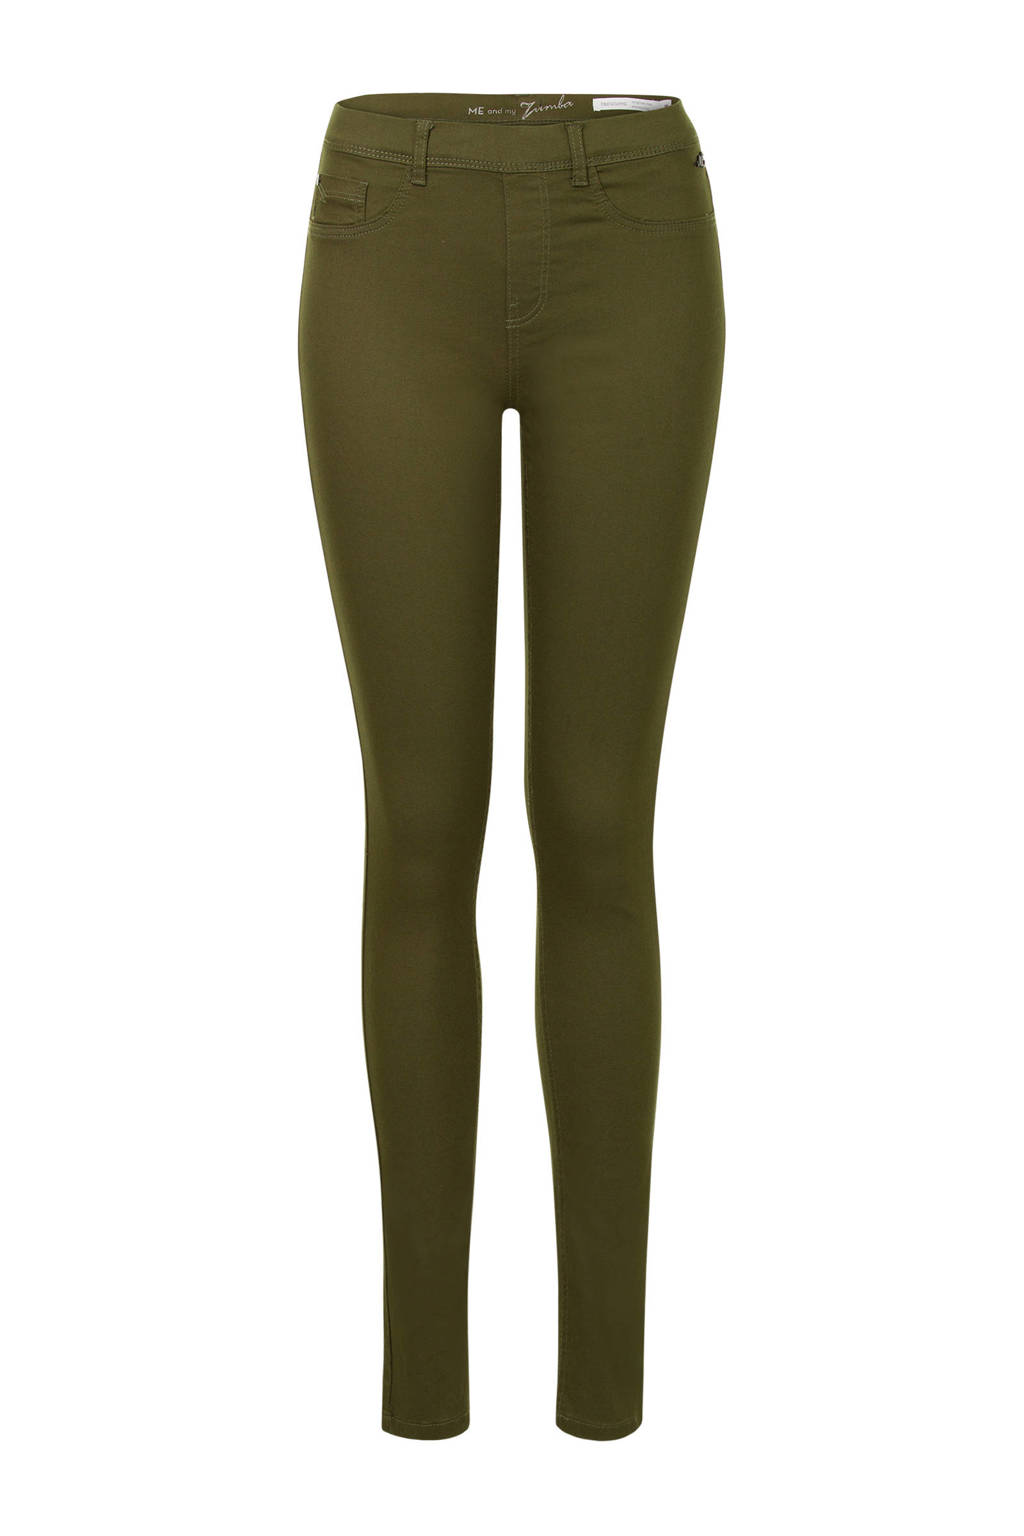 Miss Etam Lang slim fit tregging legergroen, Legergroen